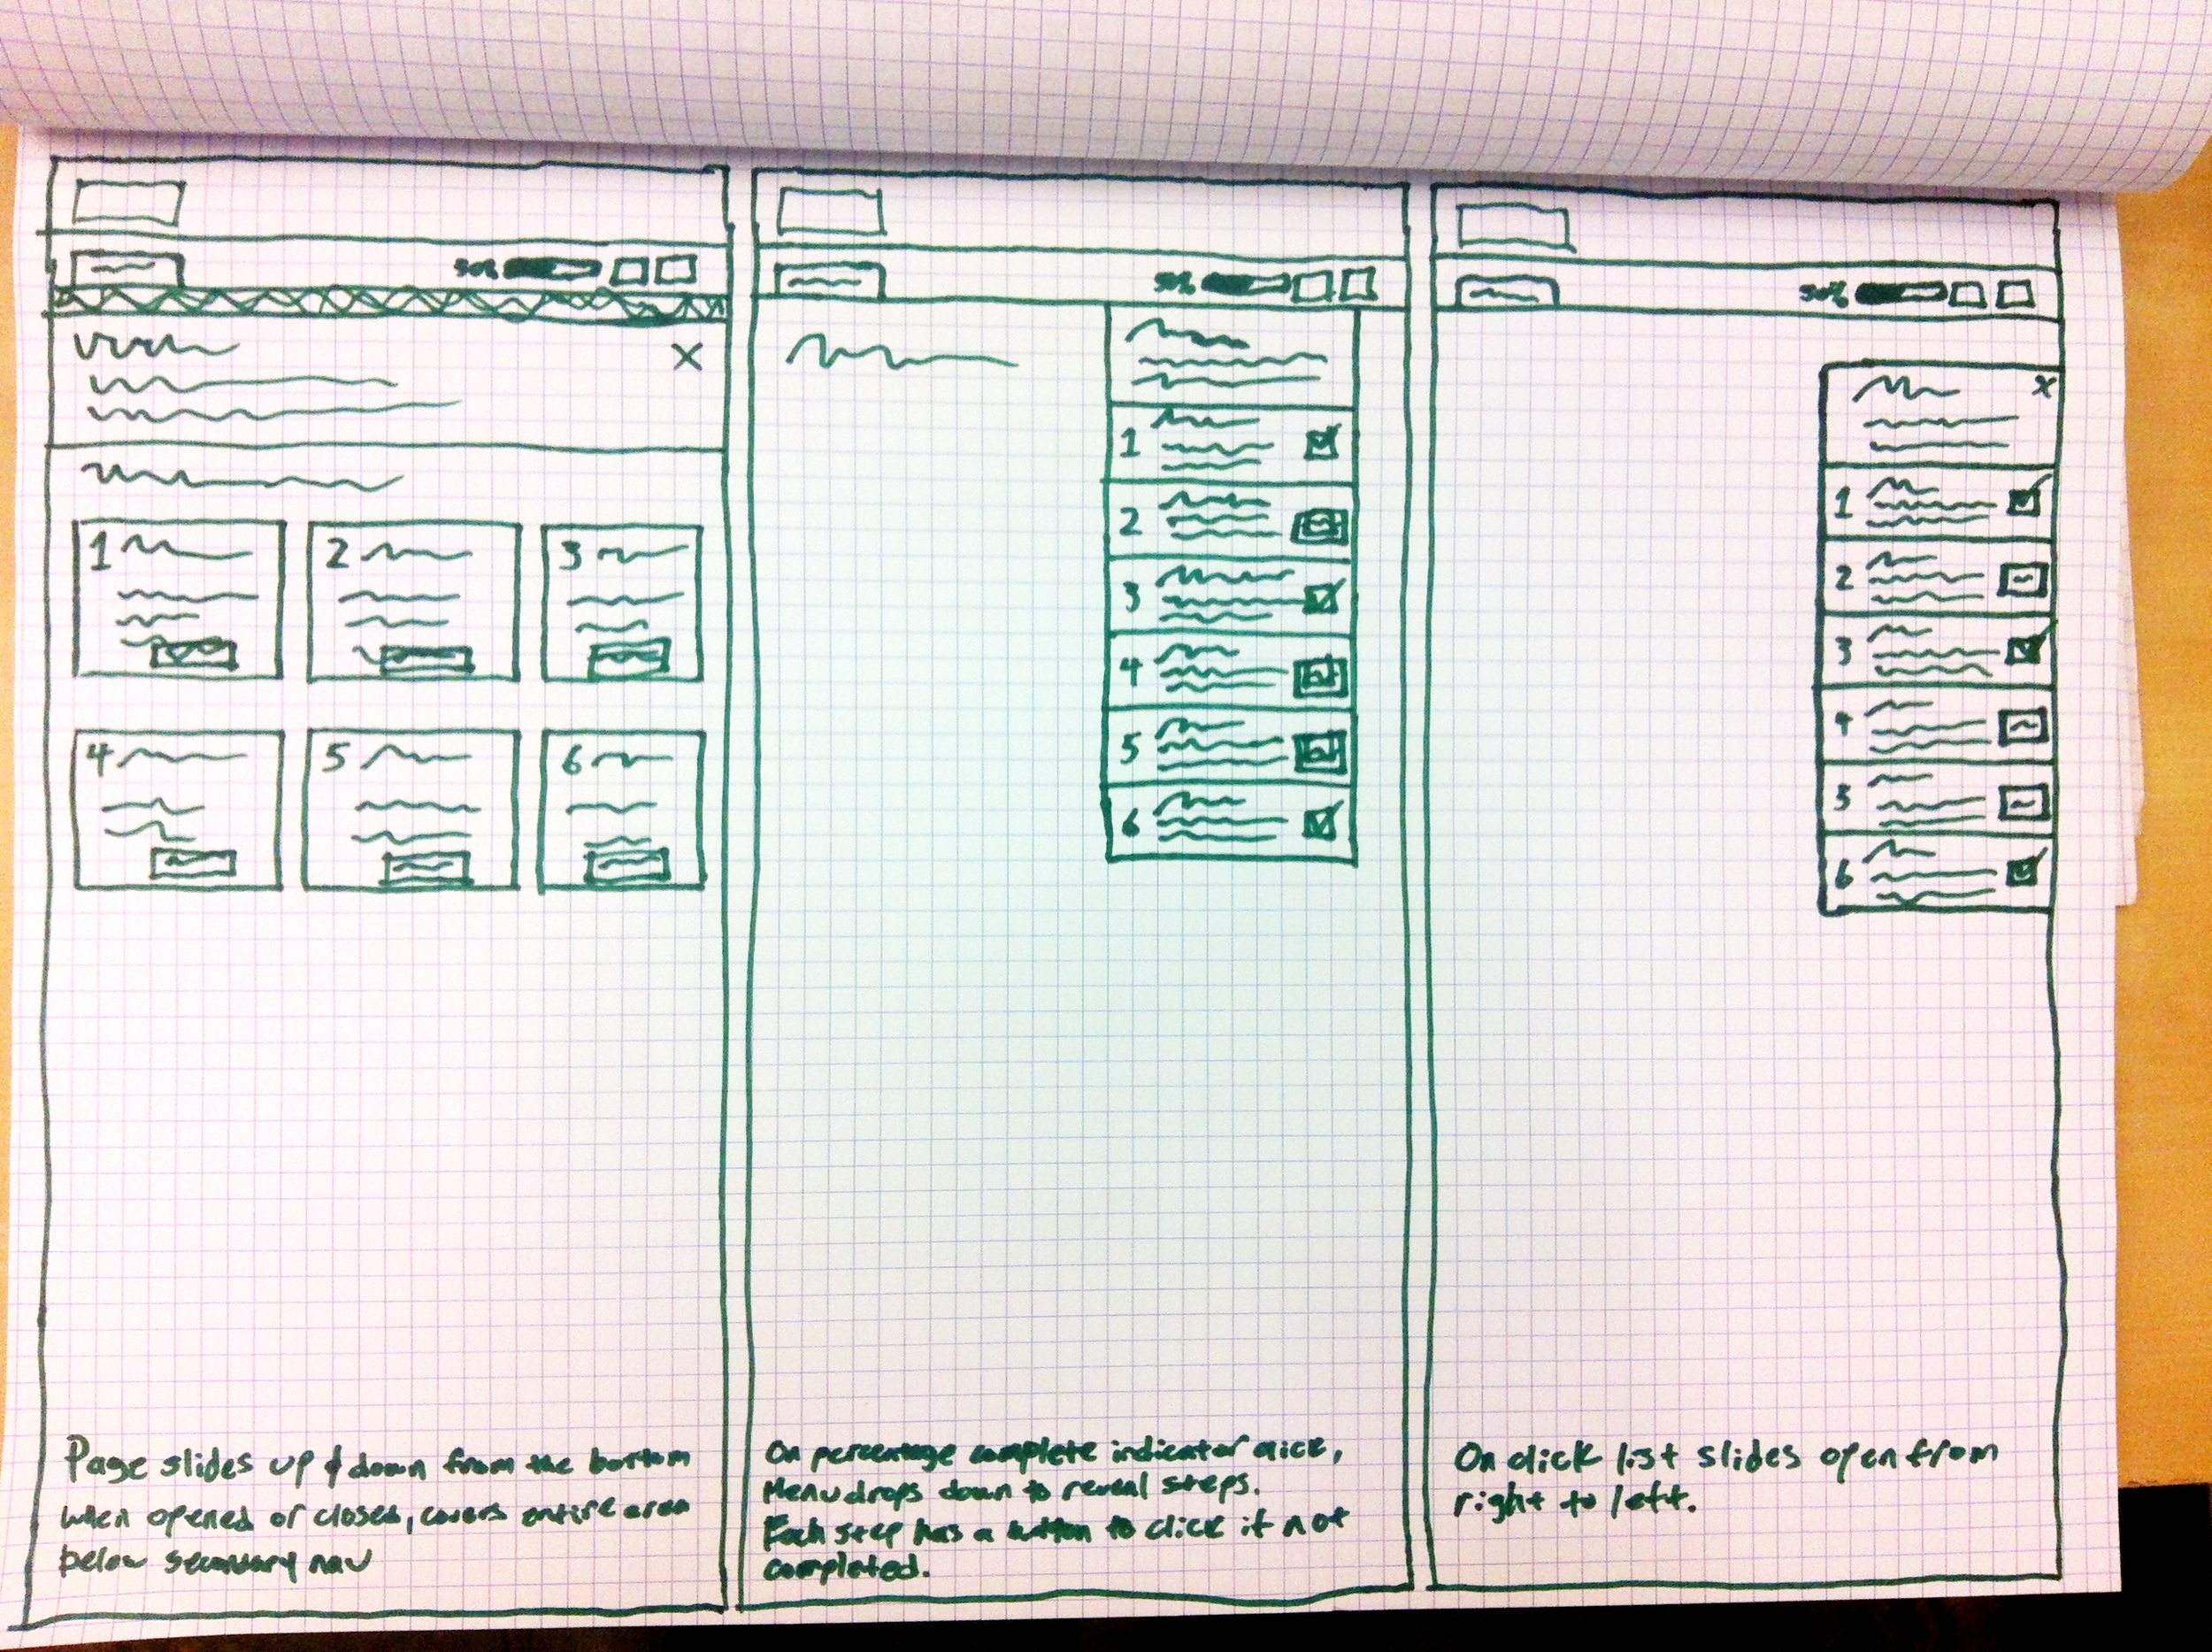 Sketches of potential new user onboarding interactions.